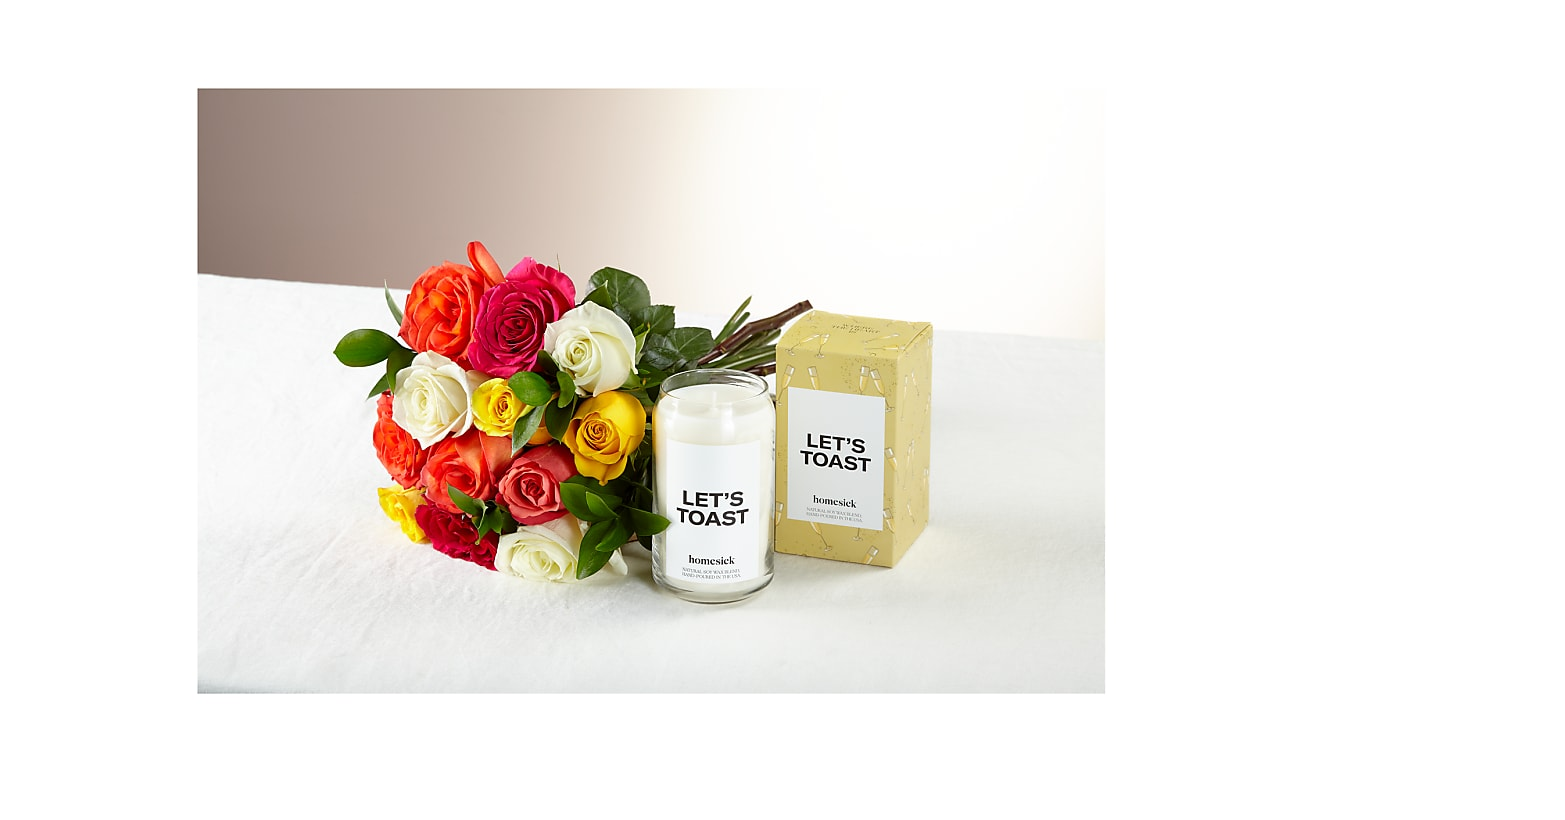 Mixed Roses & Let's Toast Homesick Candle - Image 1 Of 2